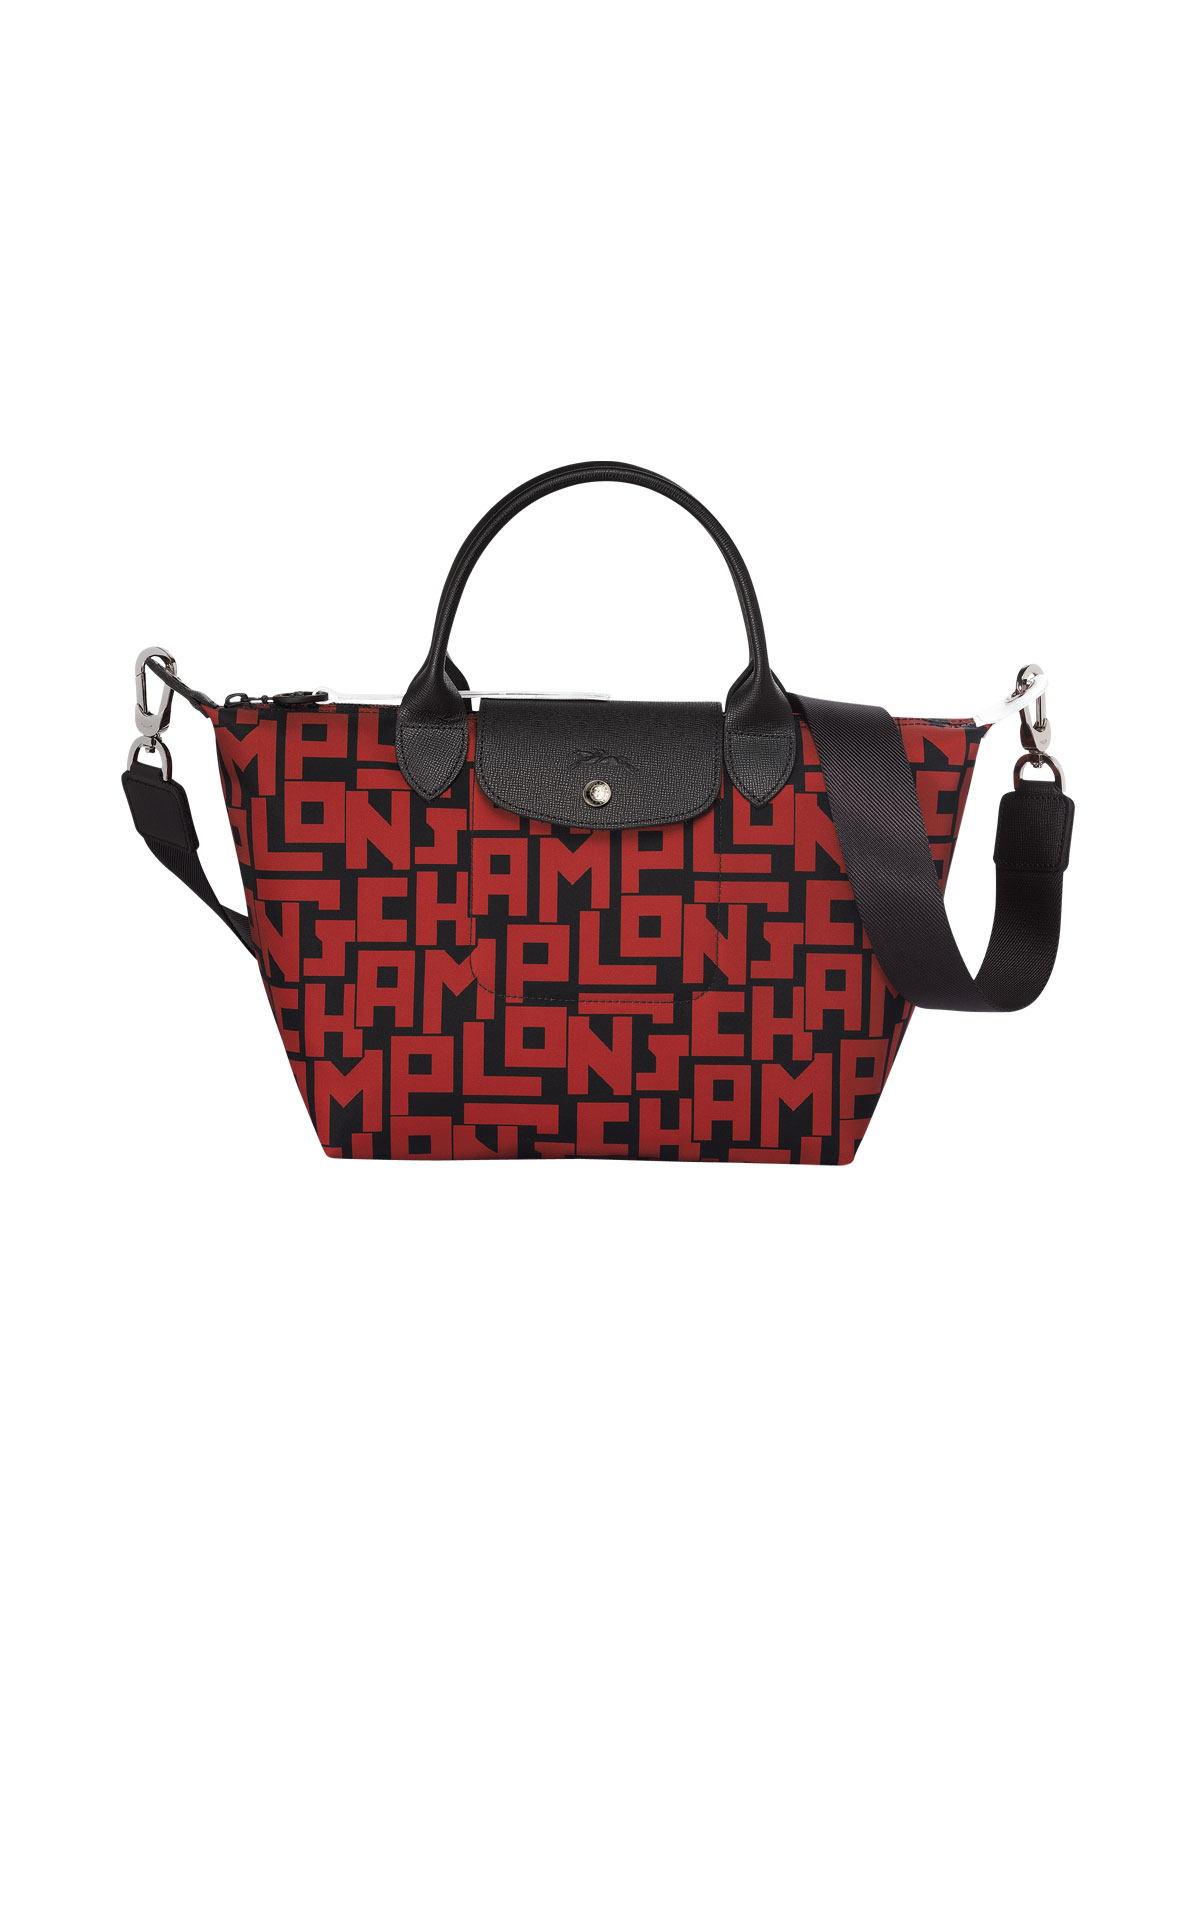 Black bag with red letters Longchamp